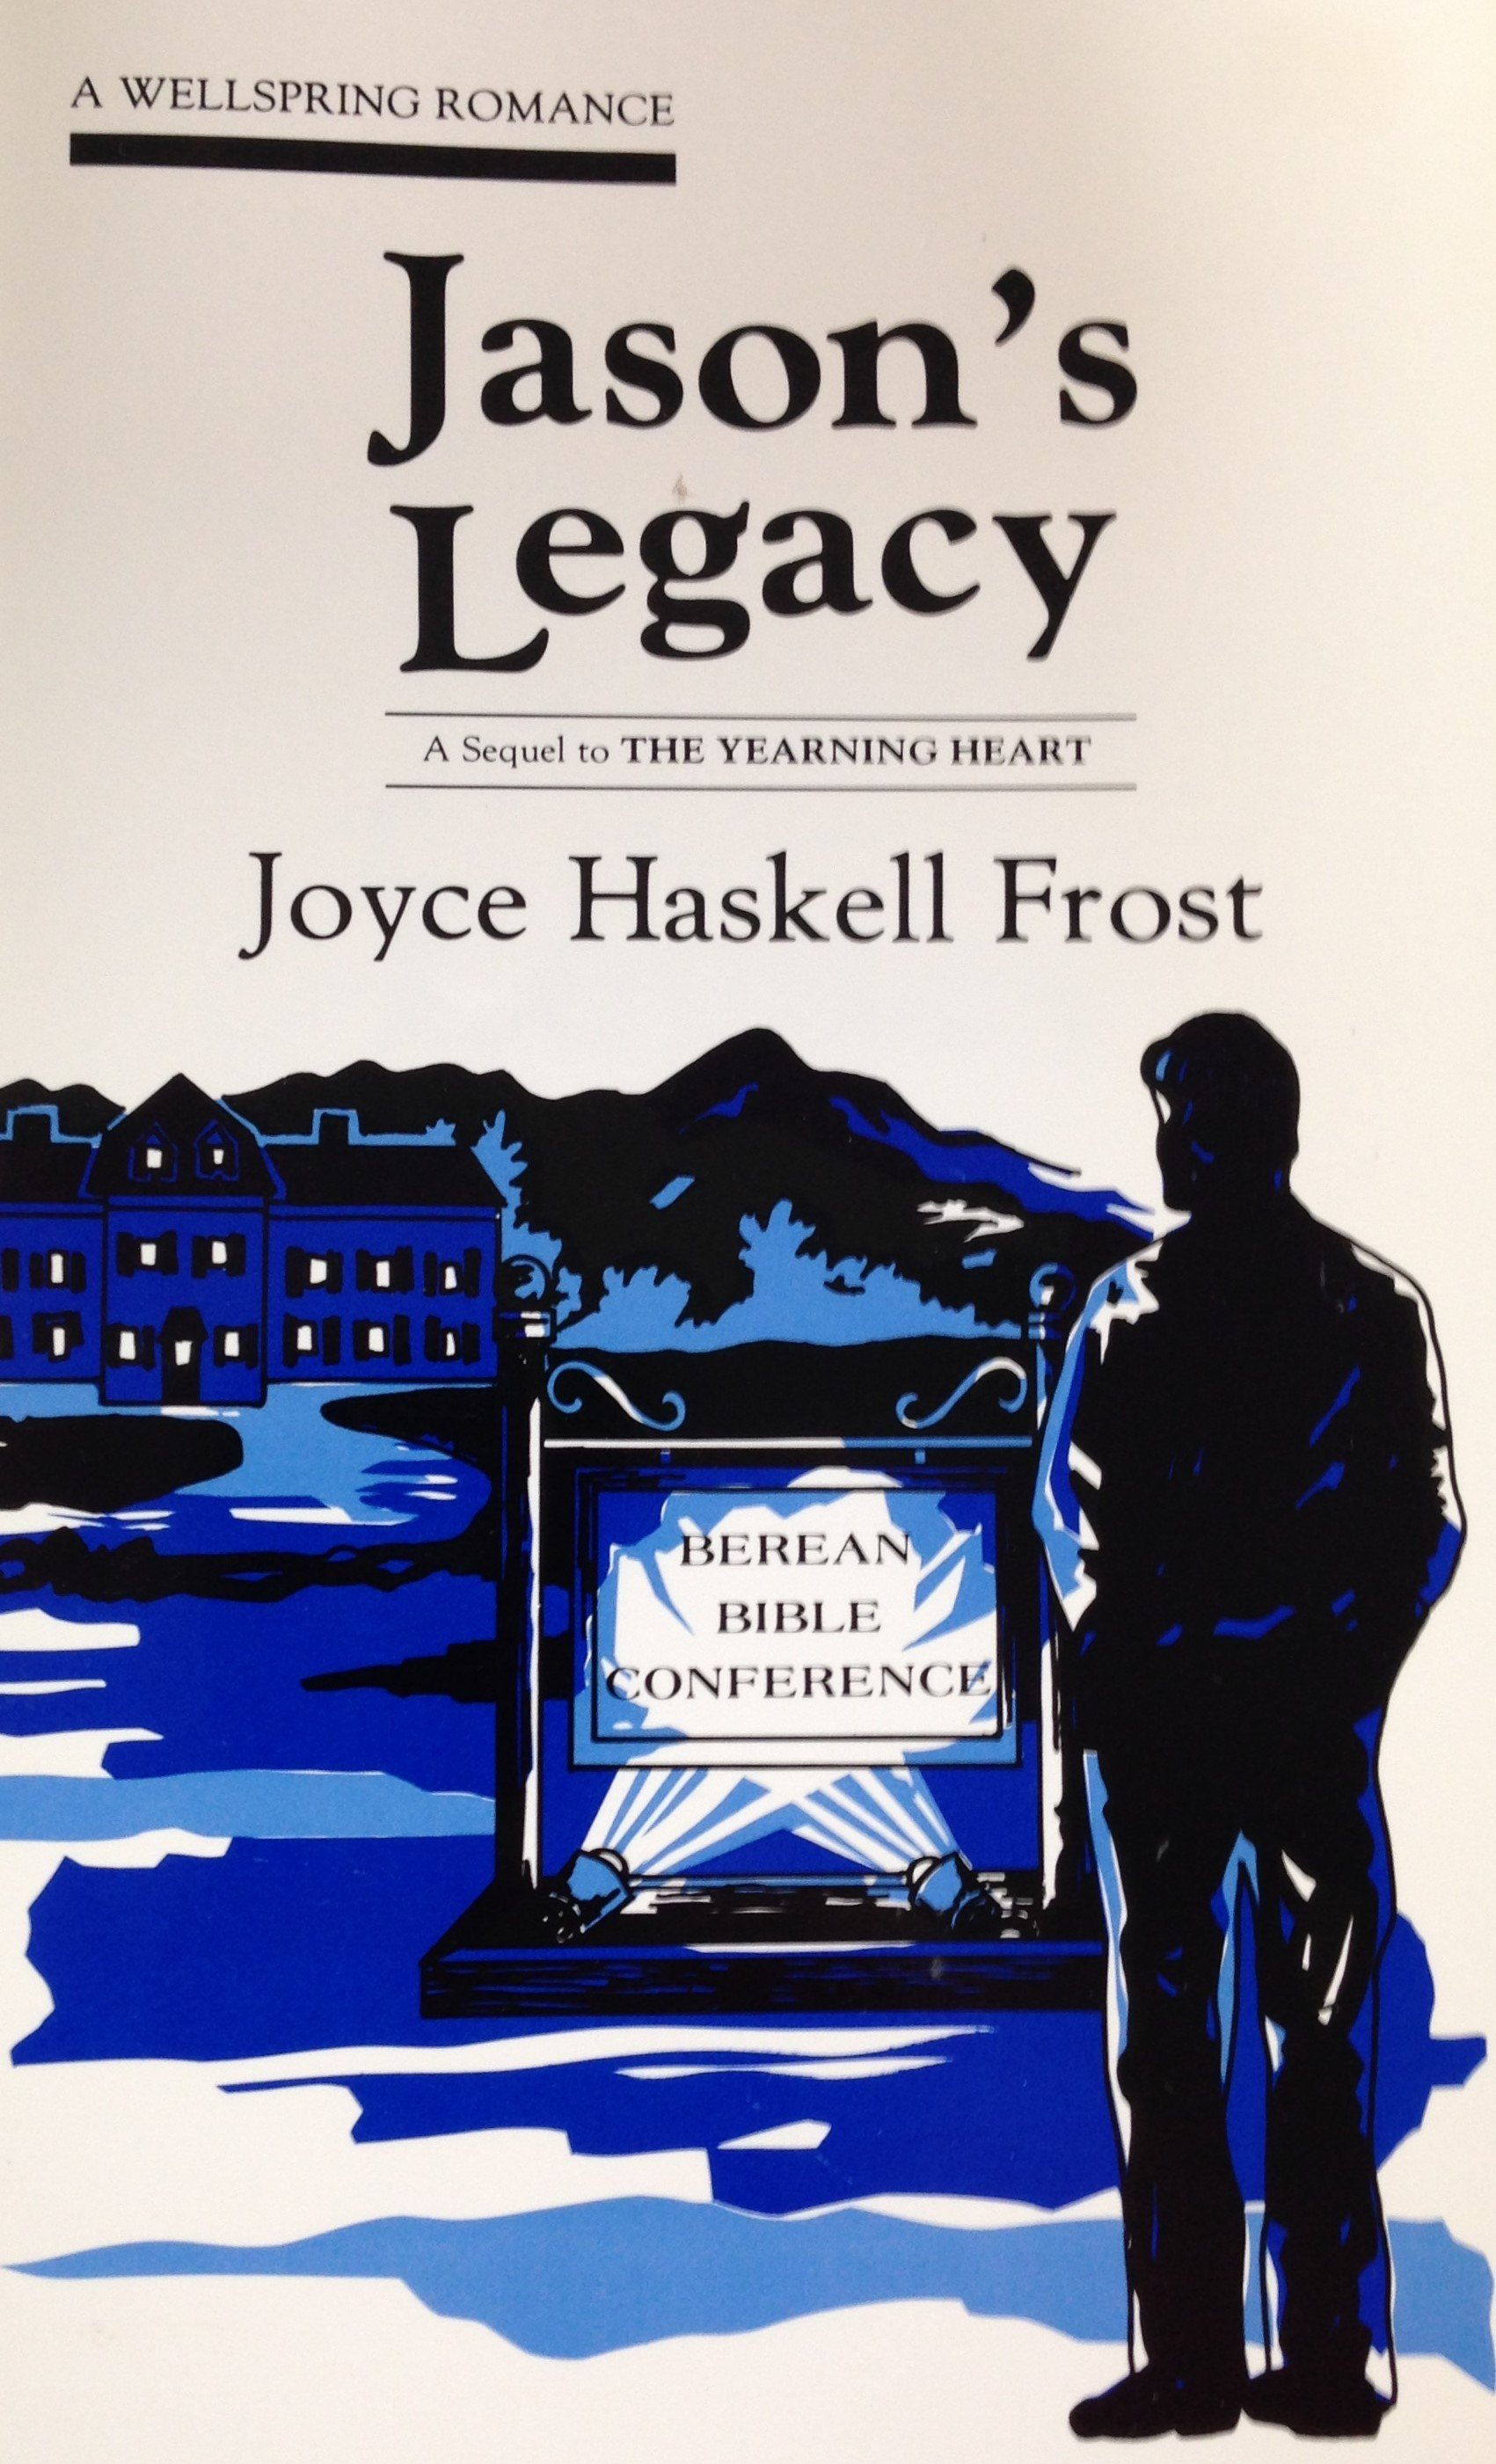 Jason's Legacy:  A Wellspring Romance by Joyce Haskell Frost 00112